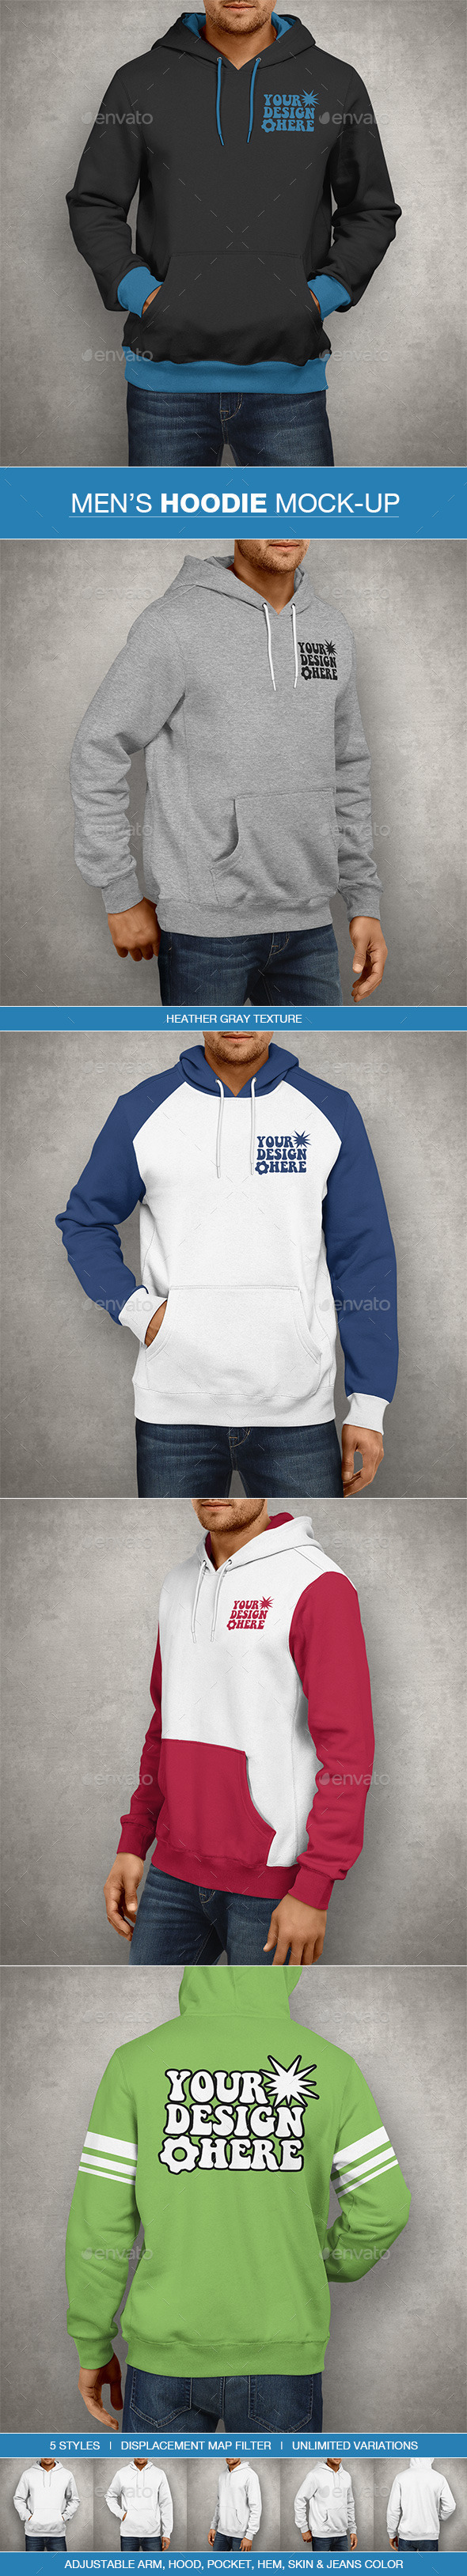 GraphicRiver Hoodie Mockup Men s Edition 10678704